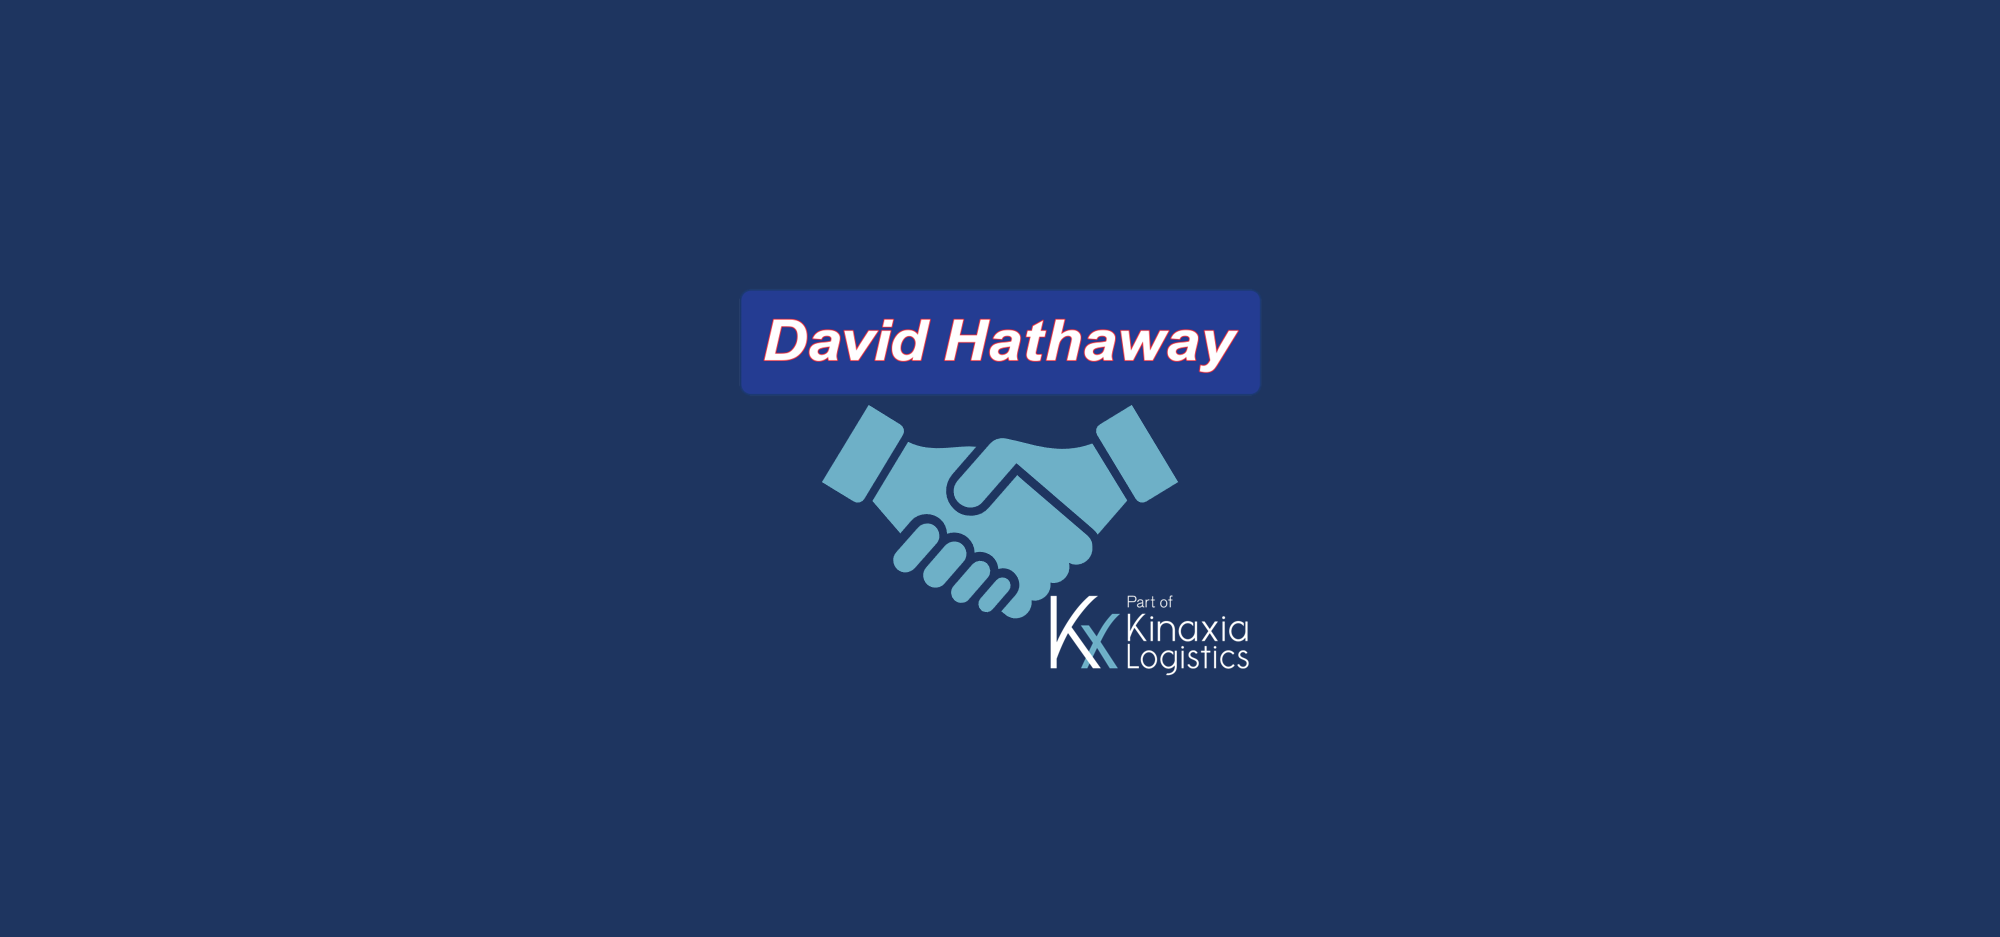 Kinaxia Logistics acquires David Hathaway Transport Ltd